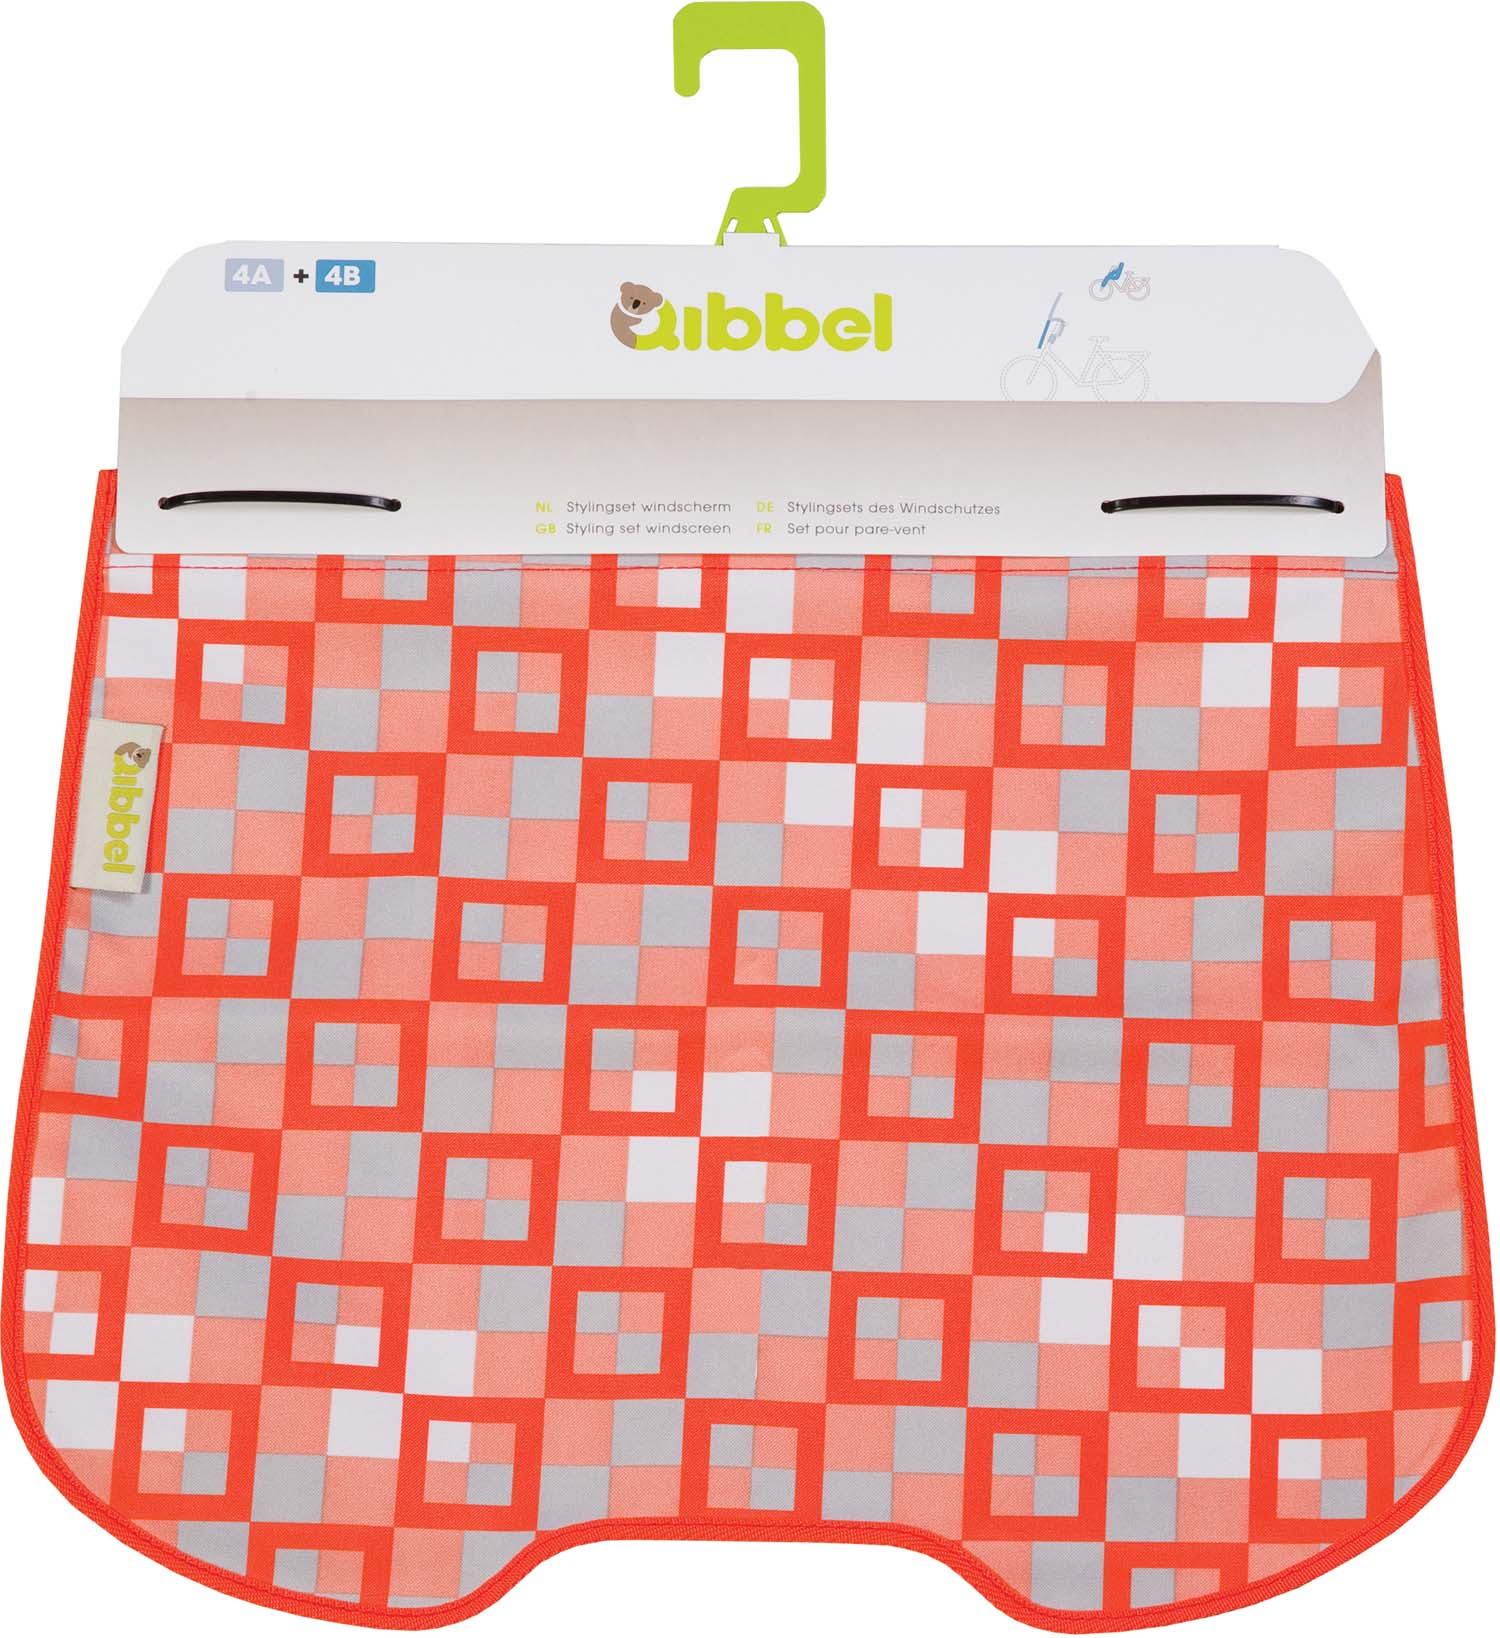 Qibbel Windschermflap Checker Rood